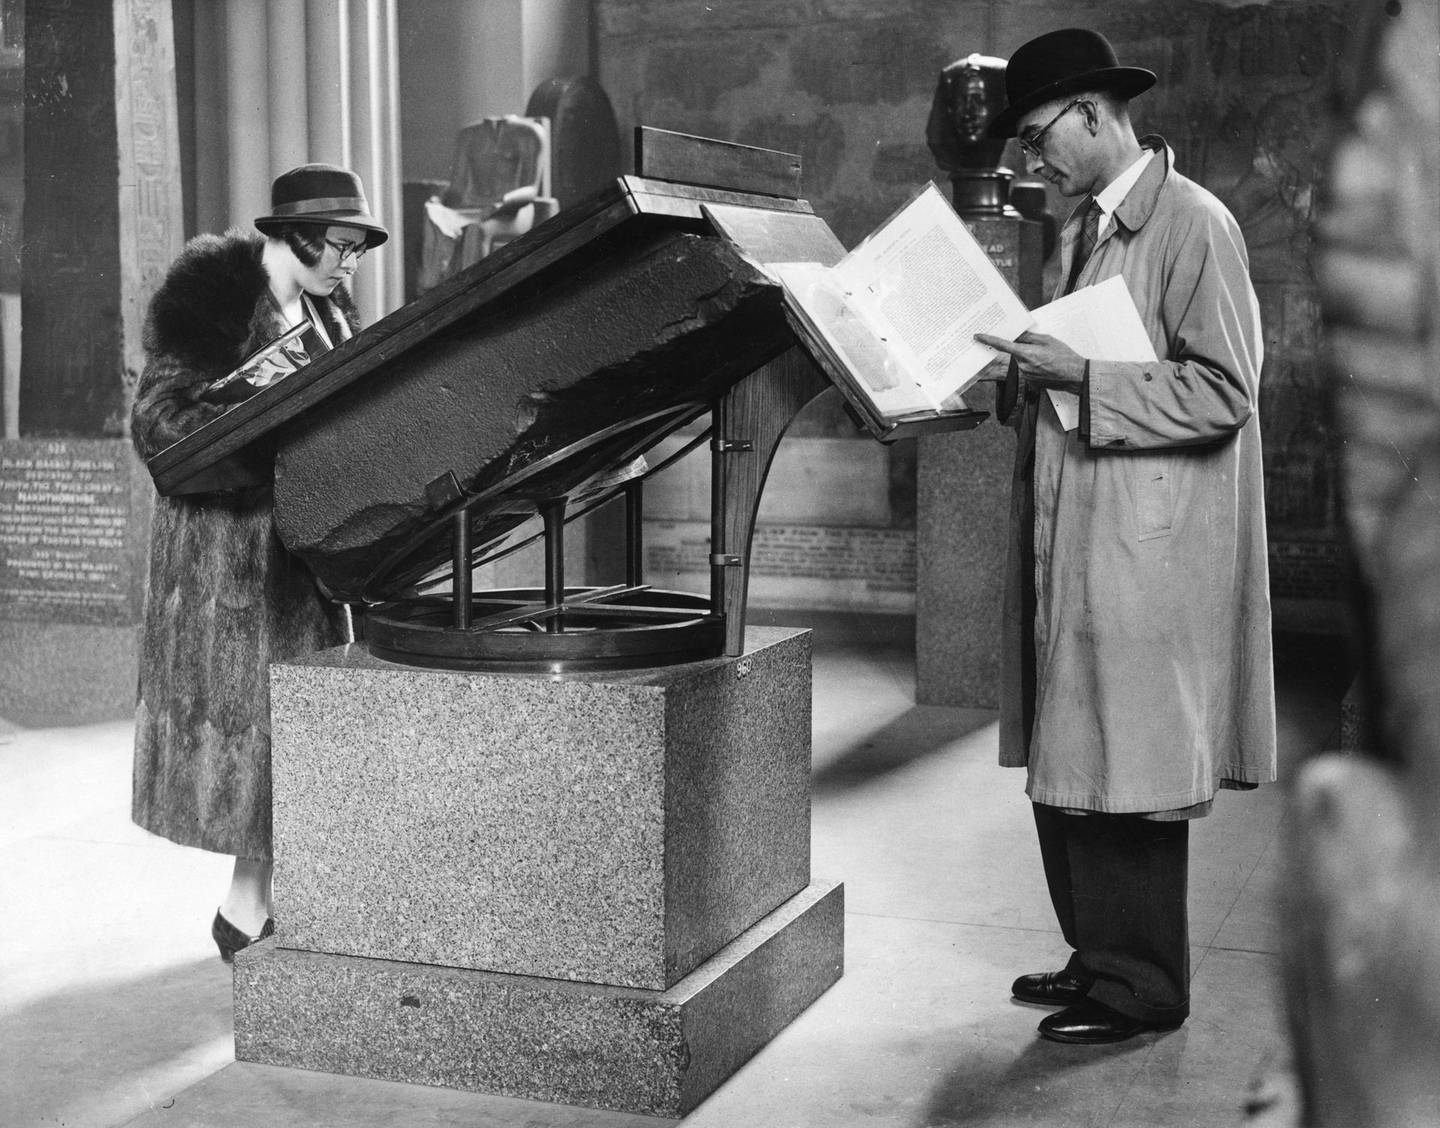 14th September 1932:  Visitors reading information concerning the Rosetta Stone, from the top of the Stone itself, in the Egyptian Gallery at the British Museum.  (Photo by Fox Photos/Getty Images)